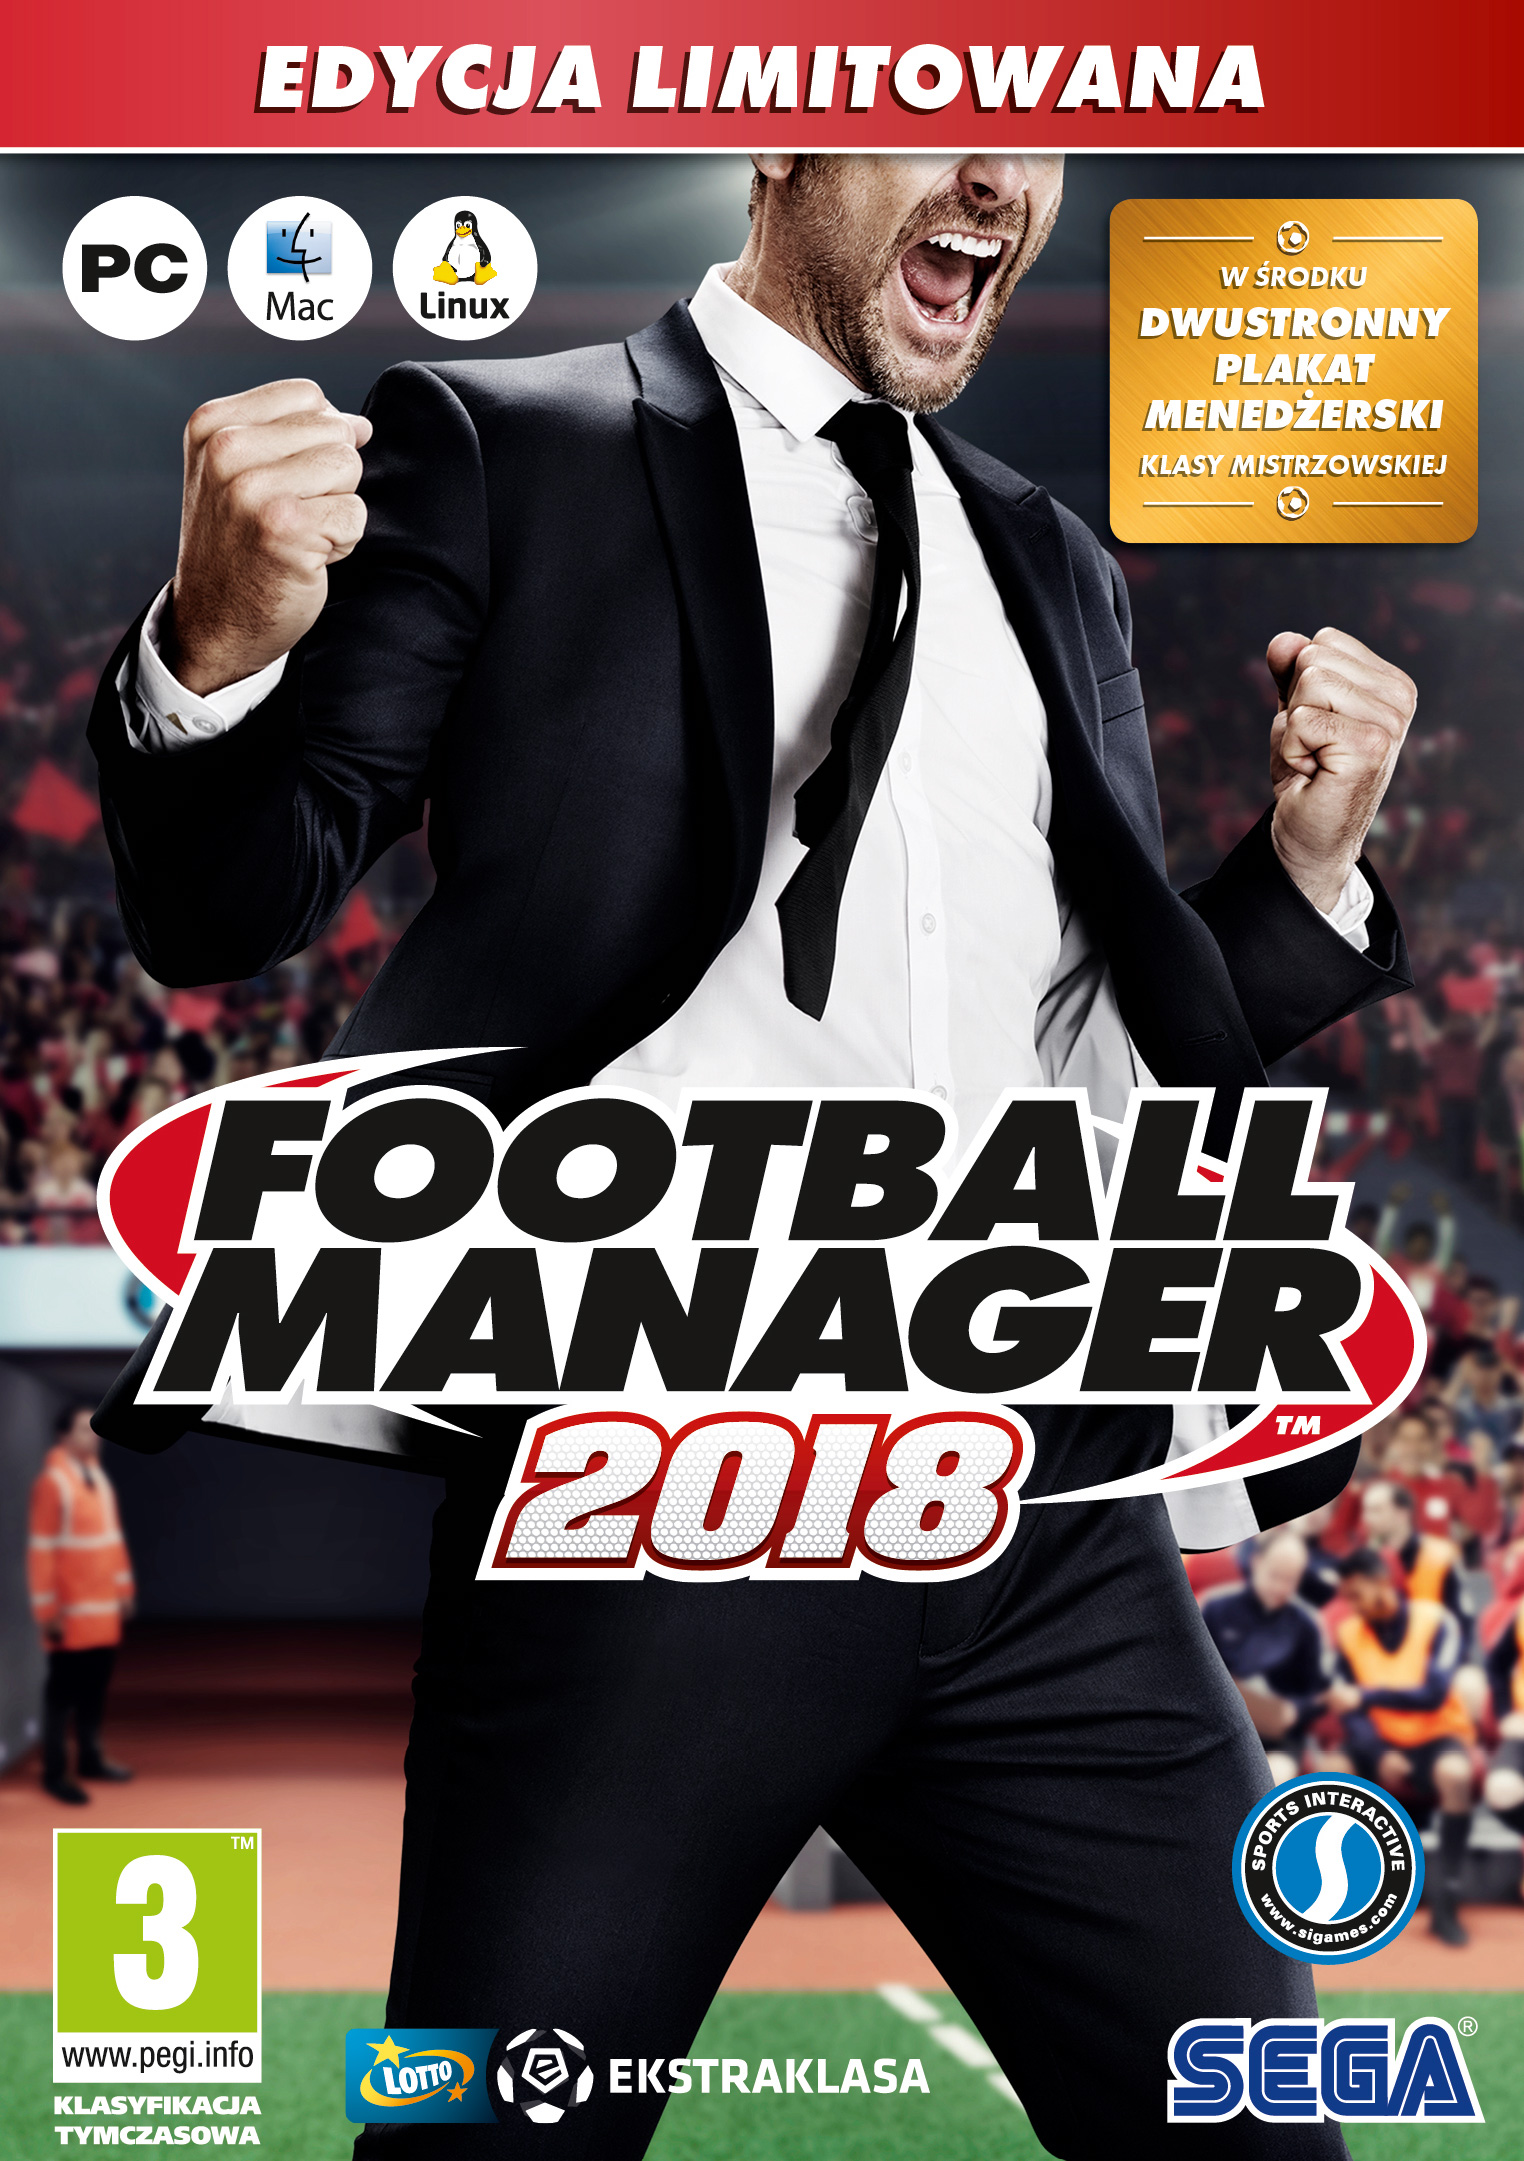 new -fottball-manager-2018